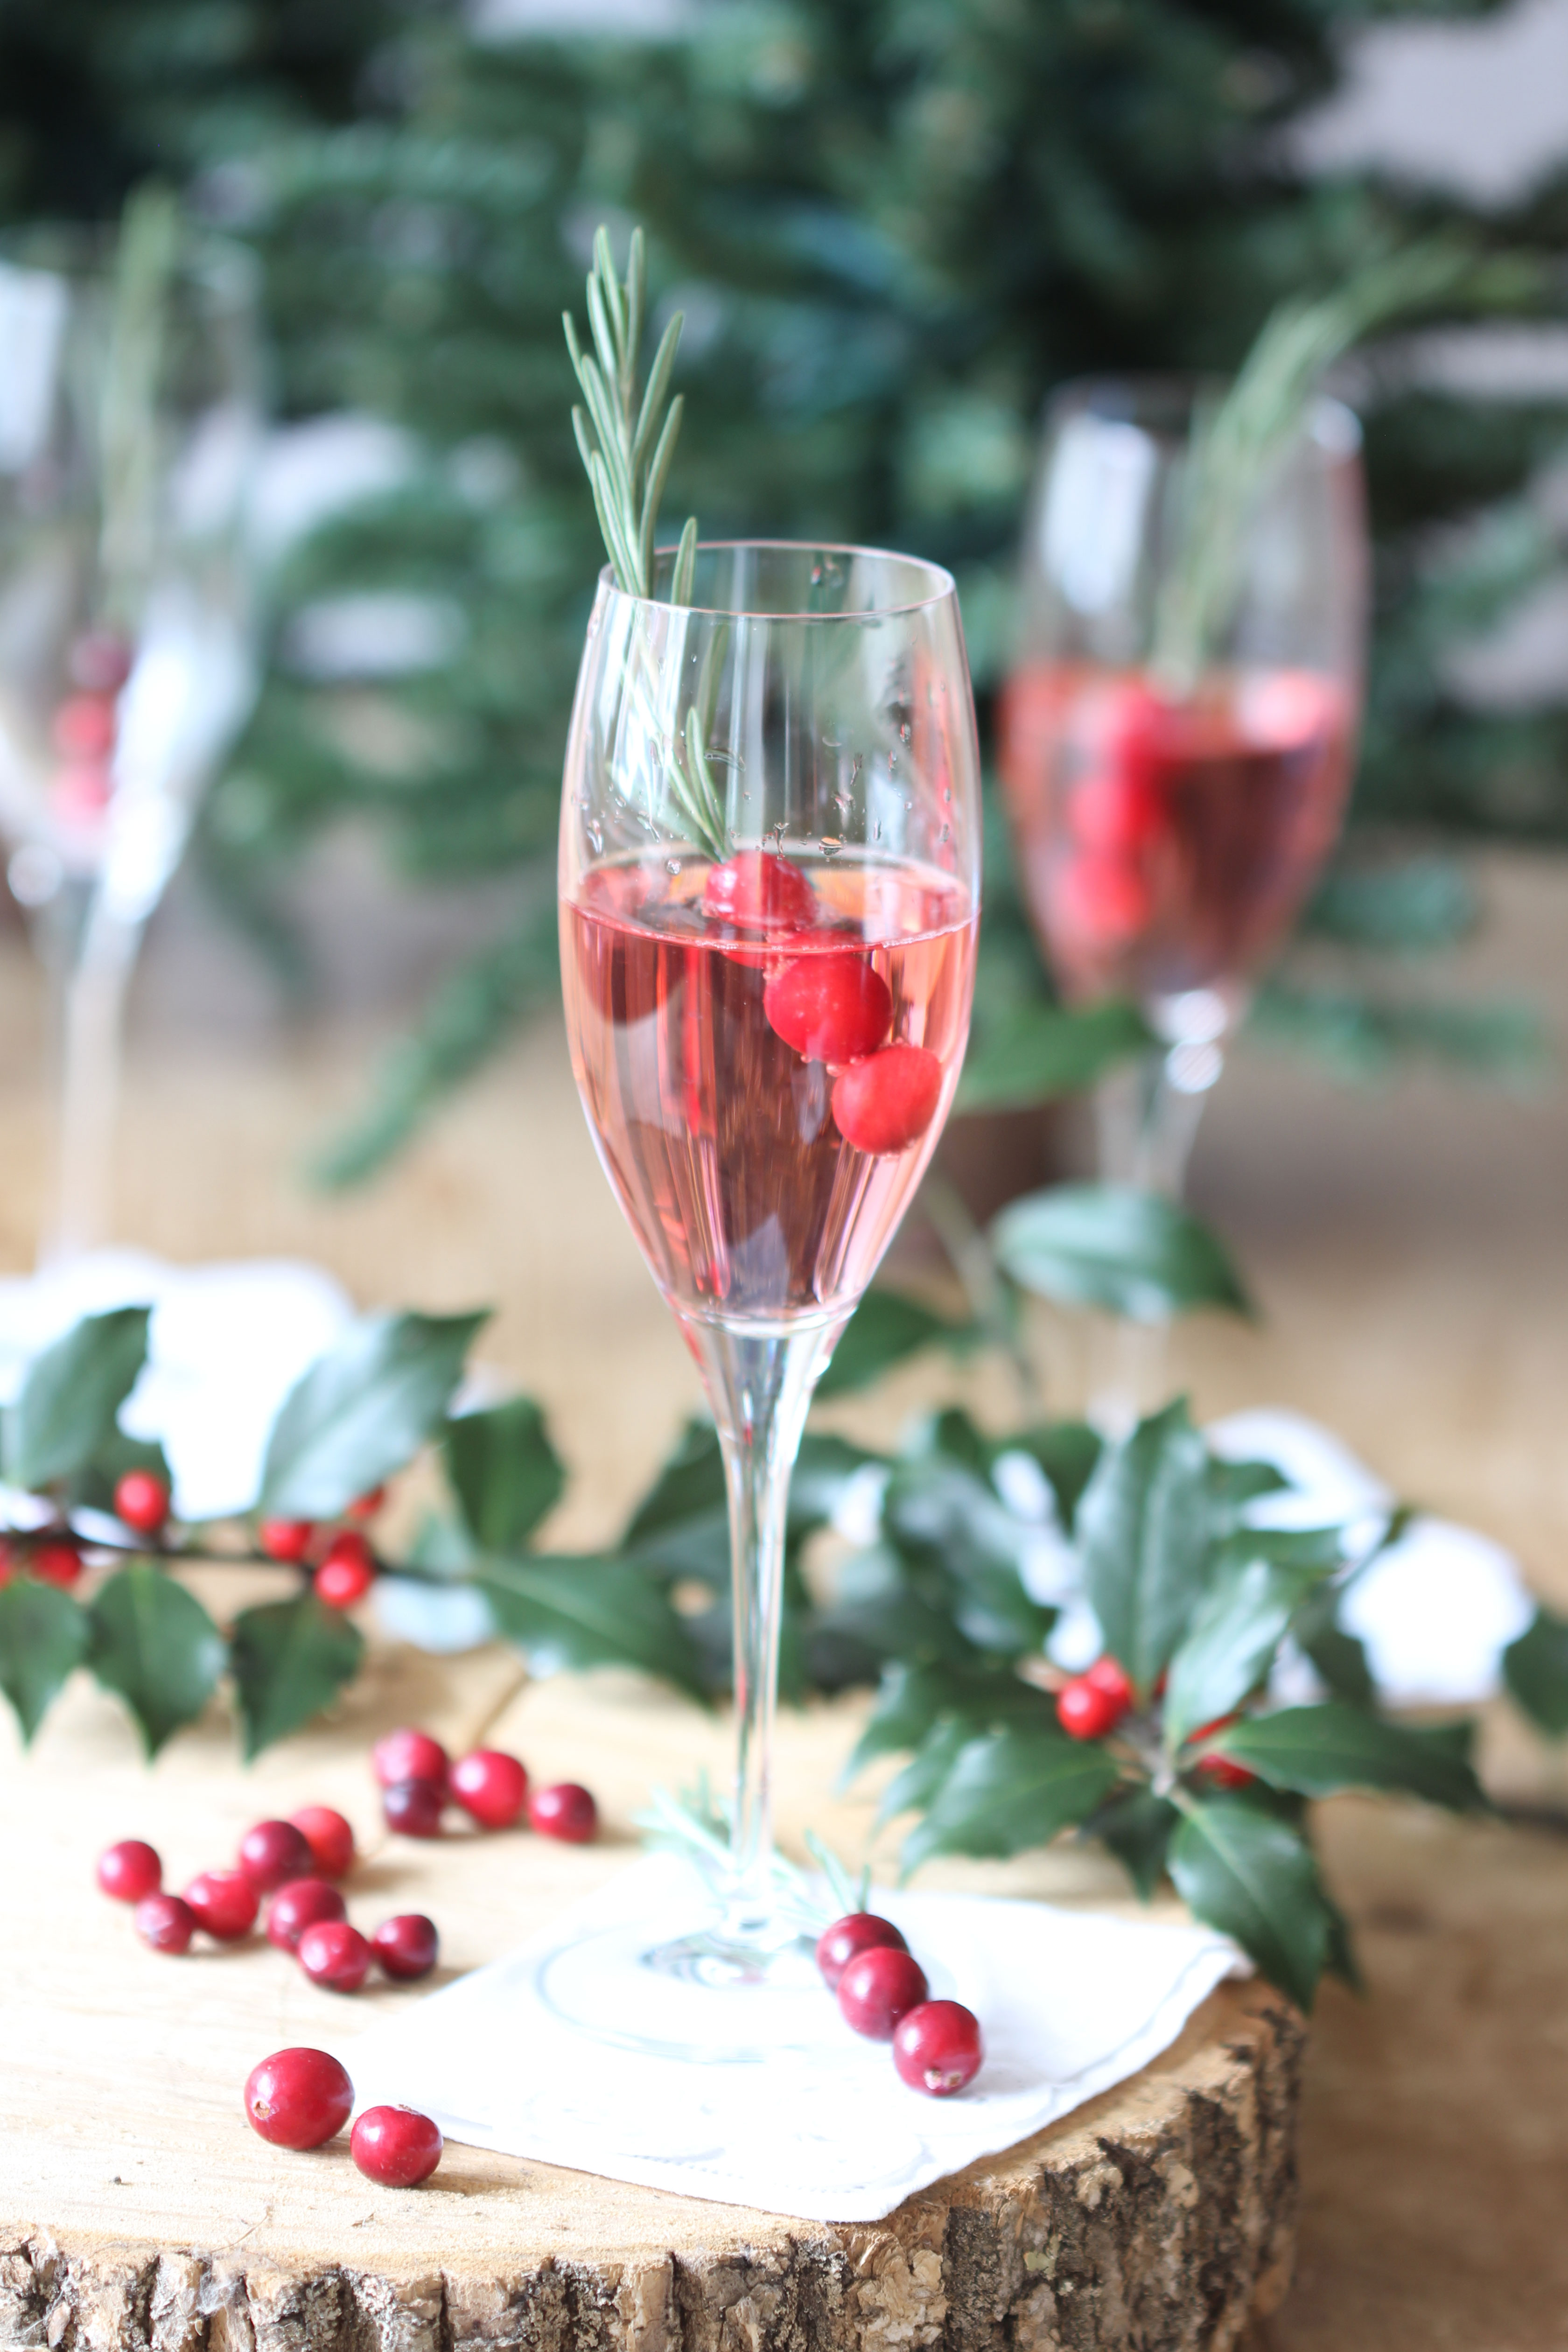 Celebrate the season with this festive and delicious Cranberry Rosemary Champagne Cocktail that Ridgely Brode serves up on her blog Ridgely's Radar.